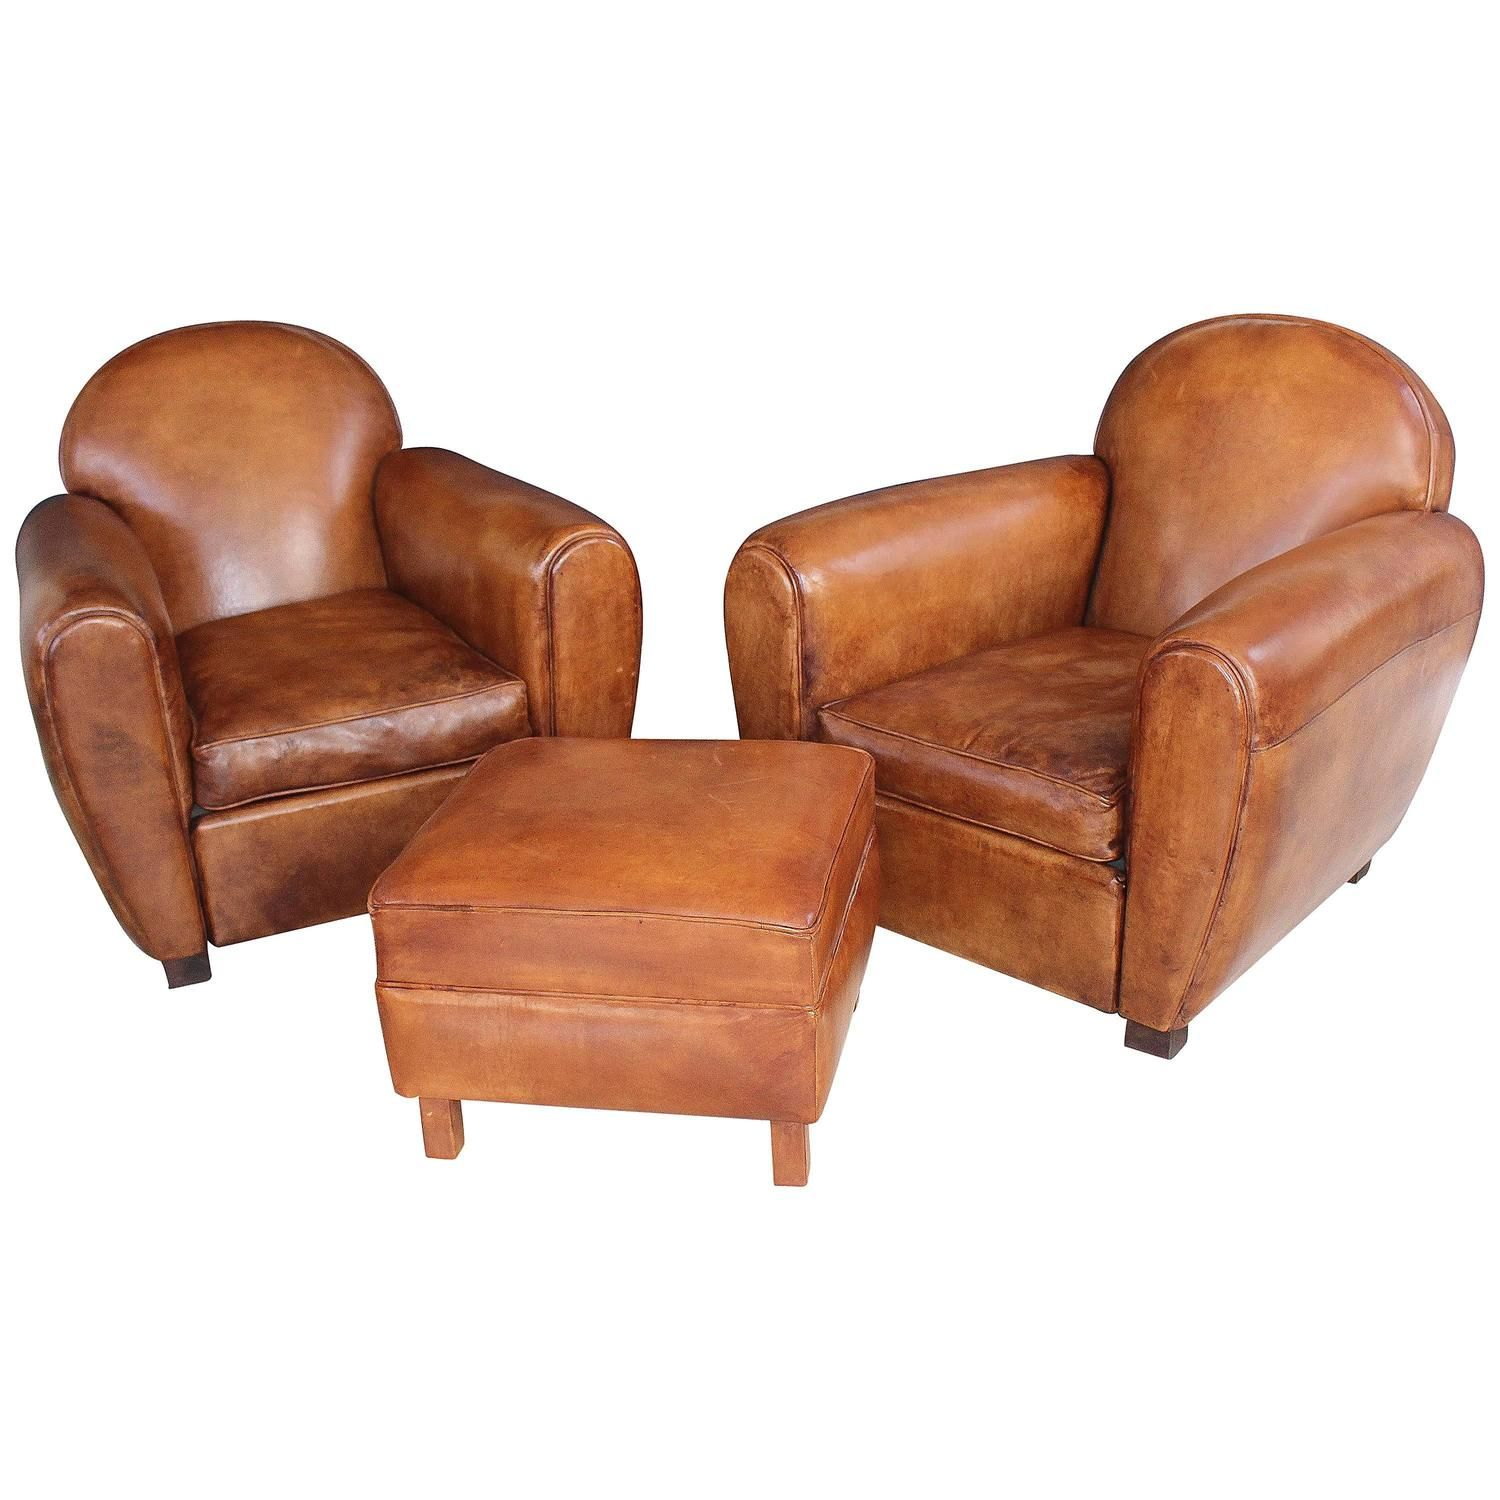 Pair of New French Leather Club Chairs with Ottoman